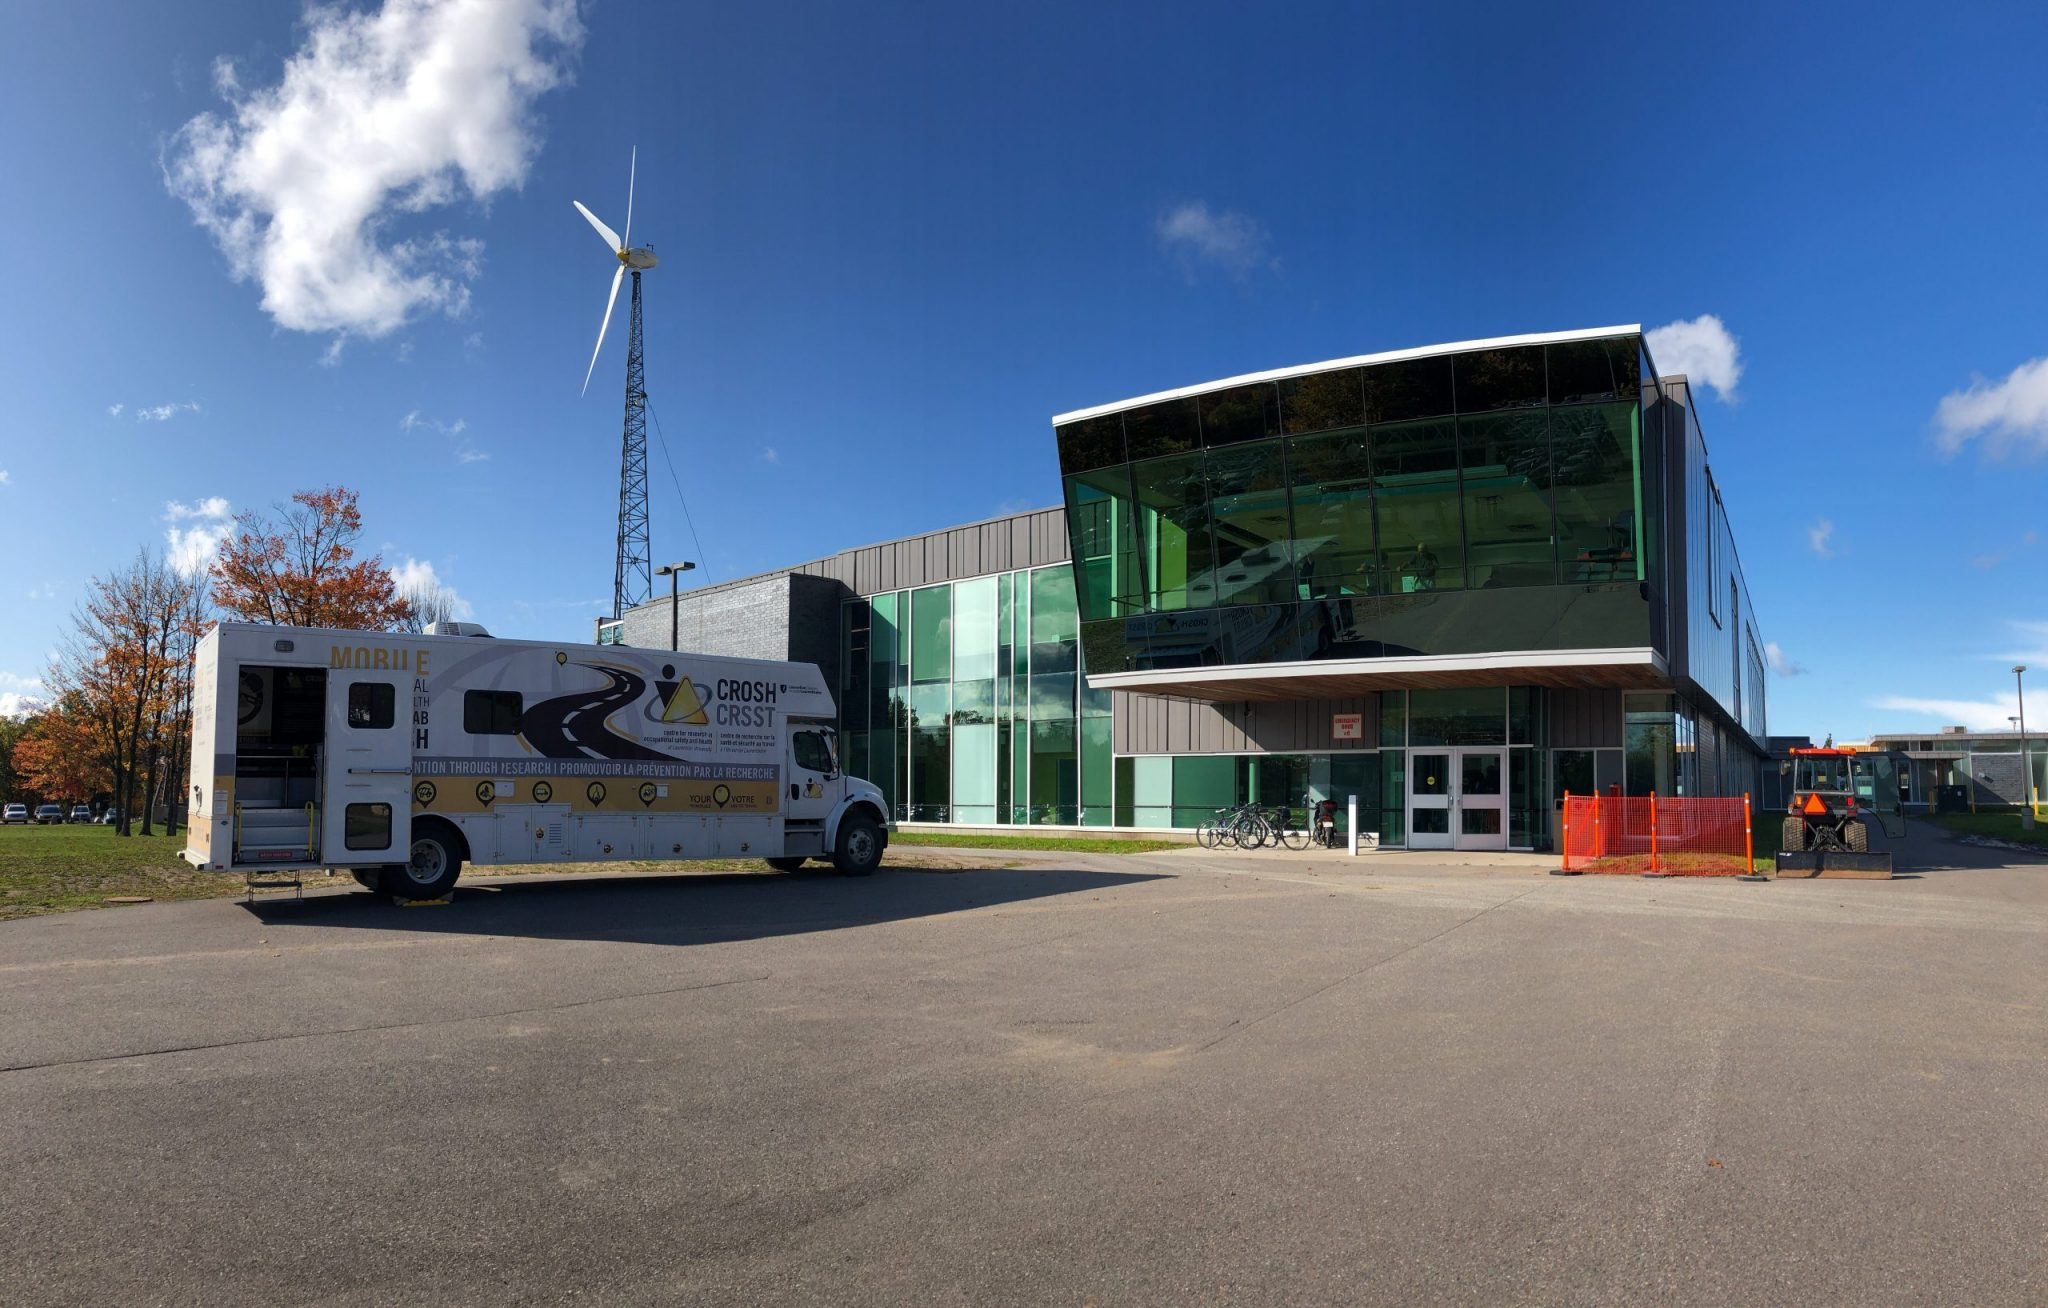 Mobile research lab (M-CROSH) parked in front of a building at Sault College